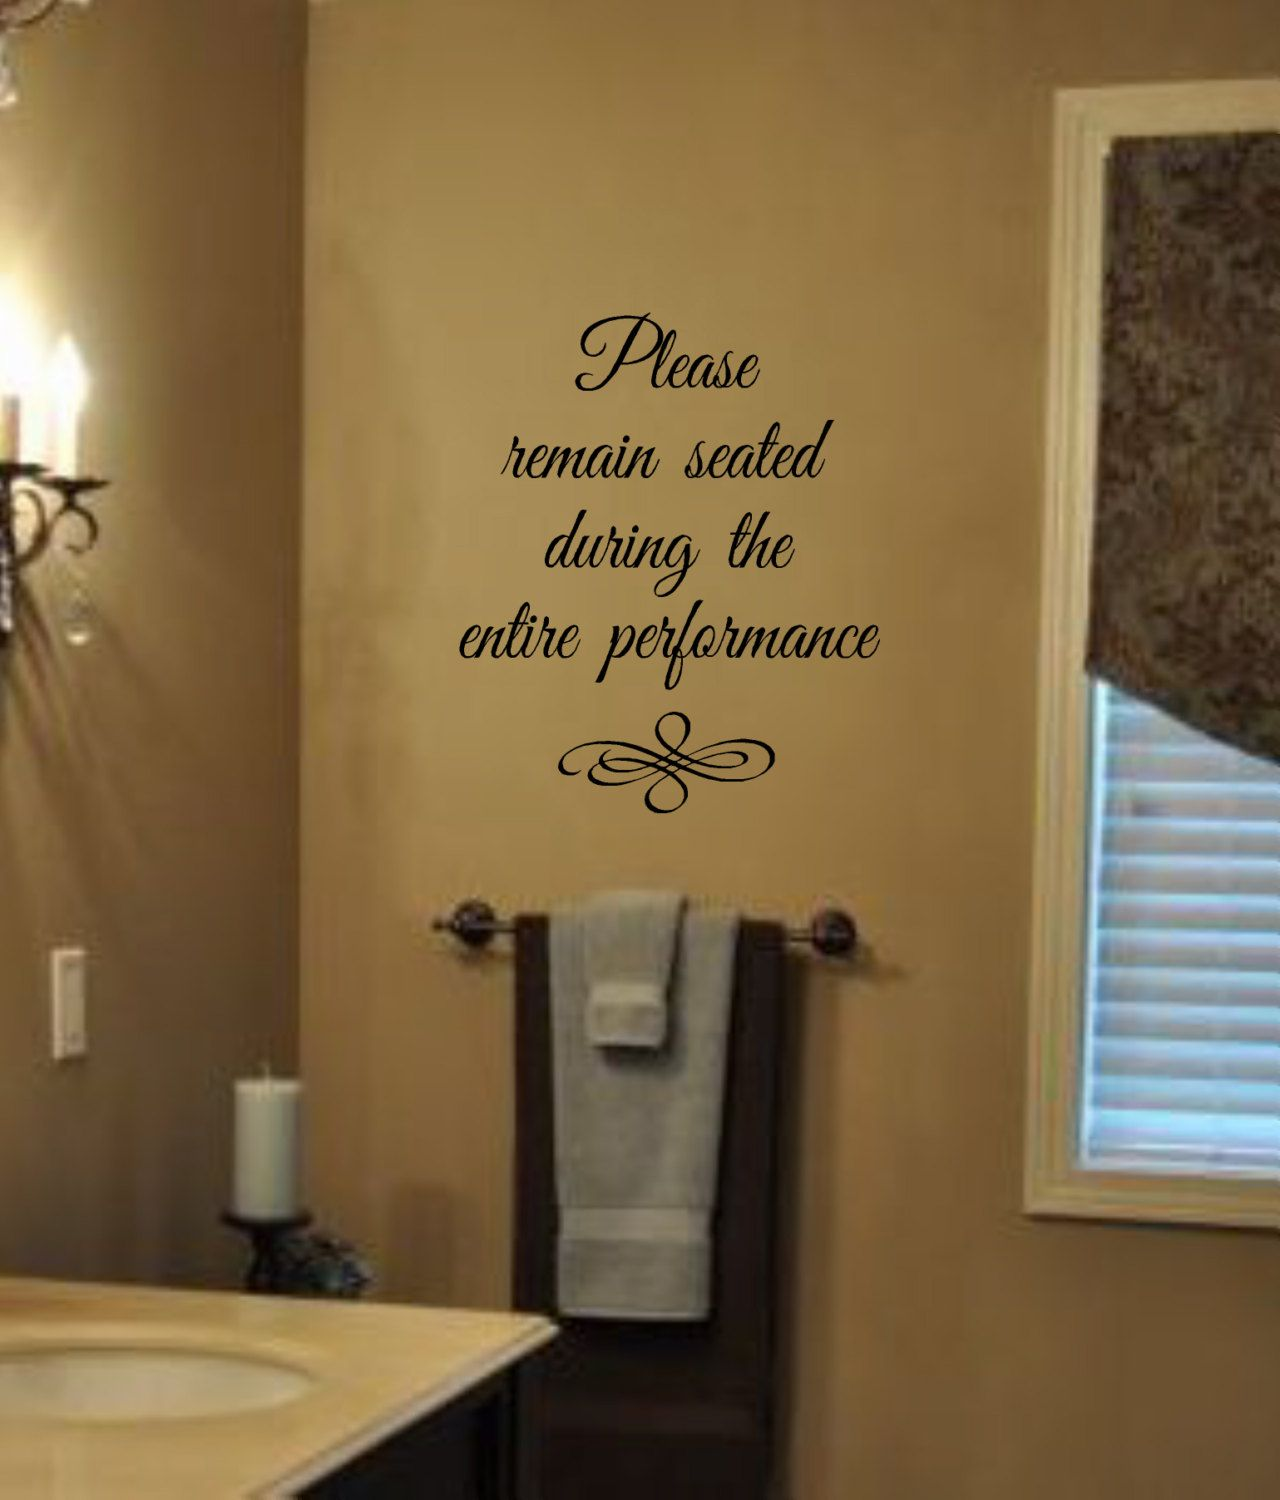 Bathroom wall decor stickers - Wall Decals Bathroom Humor Please Remain Seated During The Entire Performance Vinyl Wall Decal Bathroom